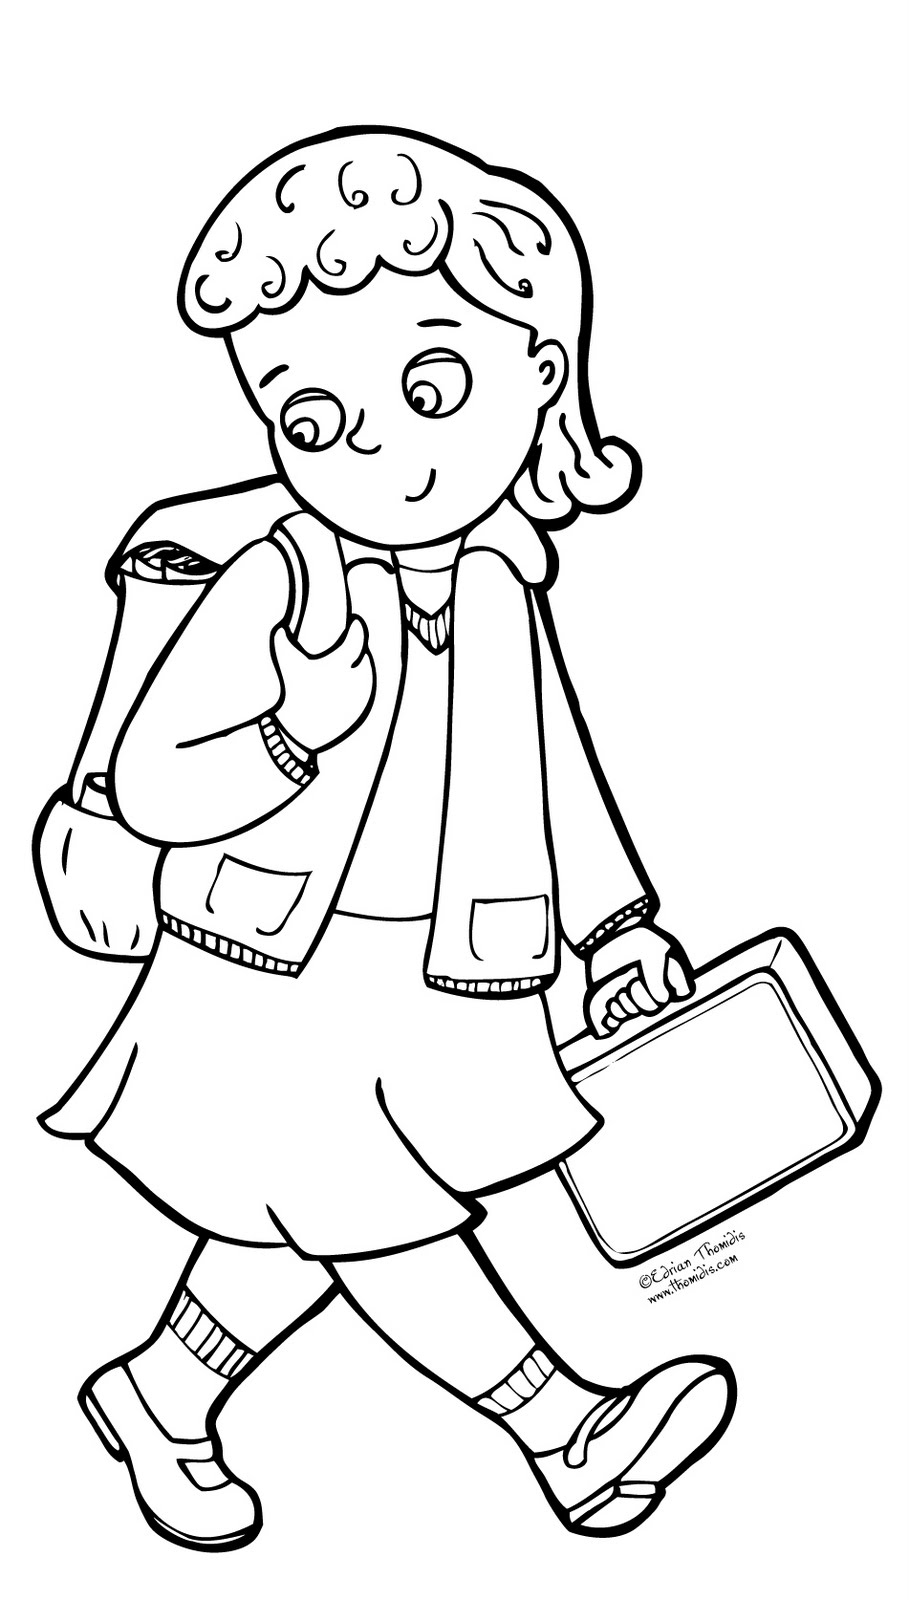 school girl coloring pages a picture paints a thousand words july 2011 pages girl coloring school